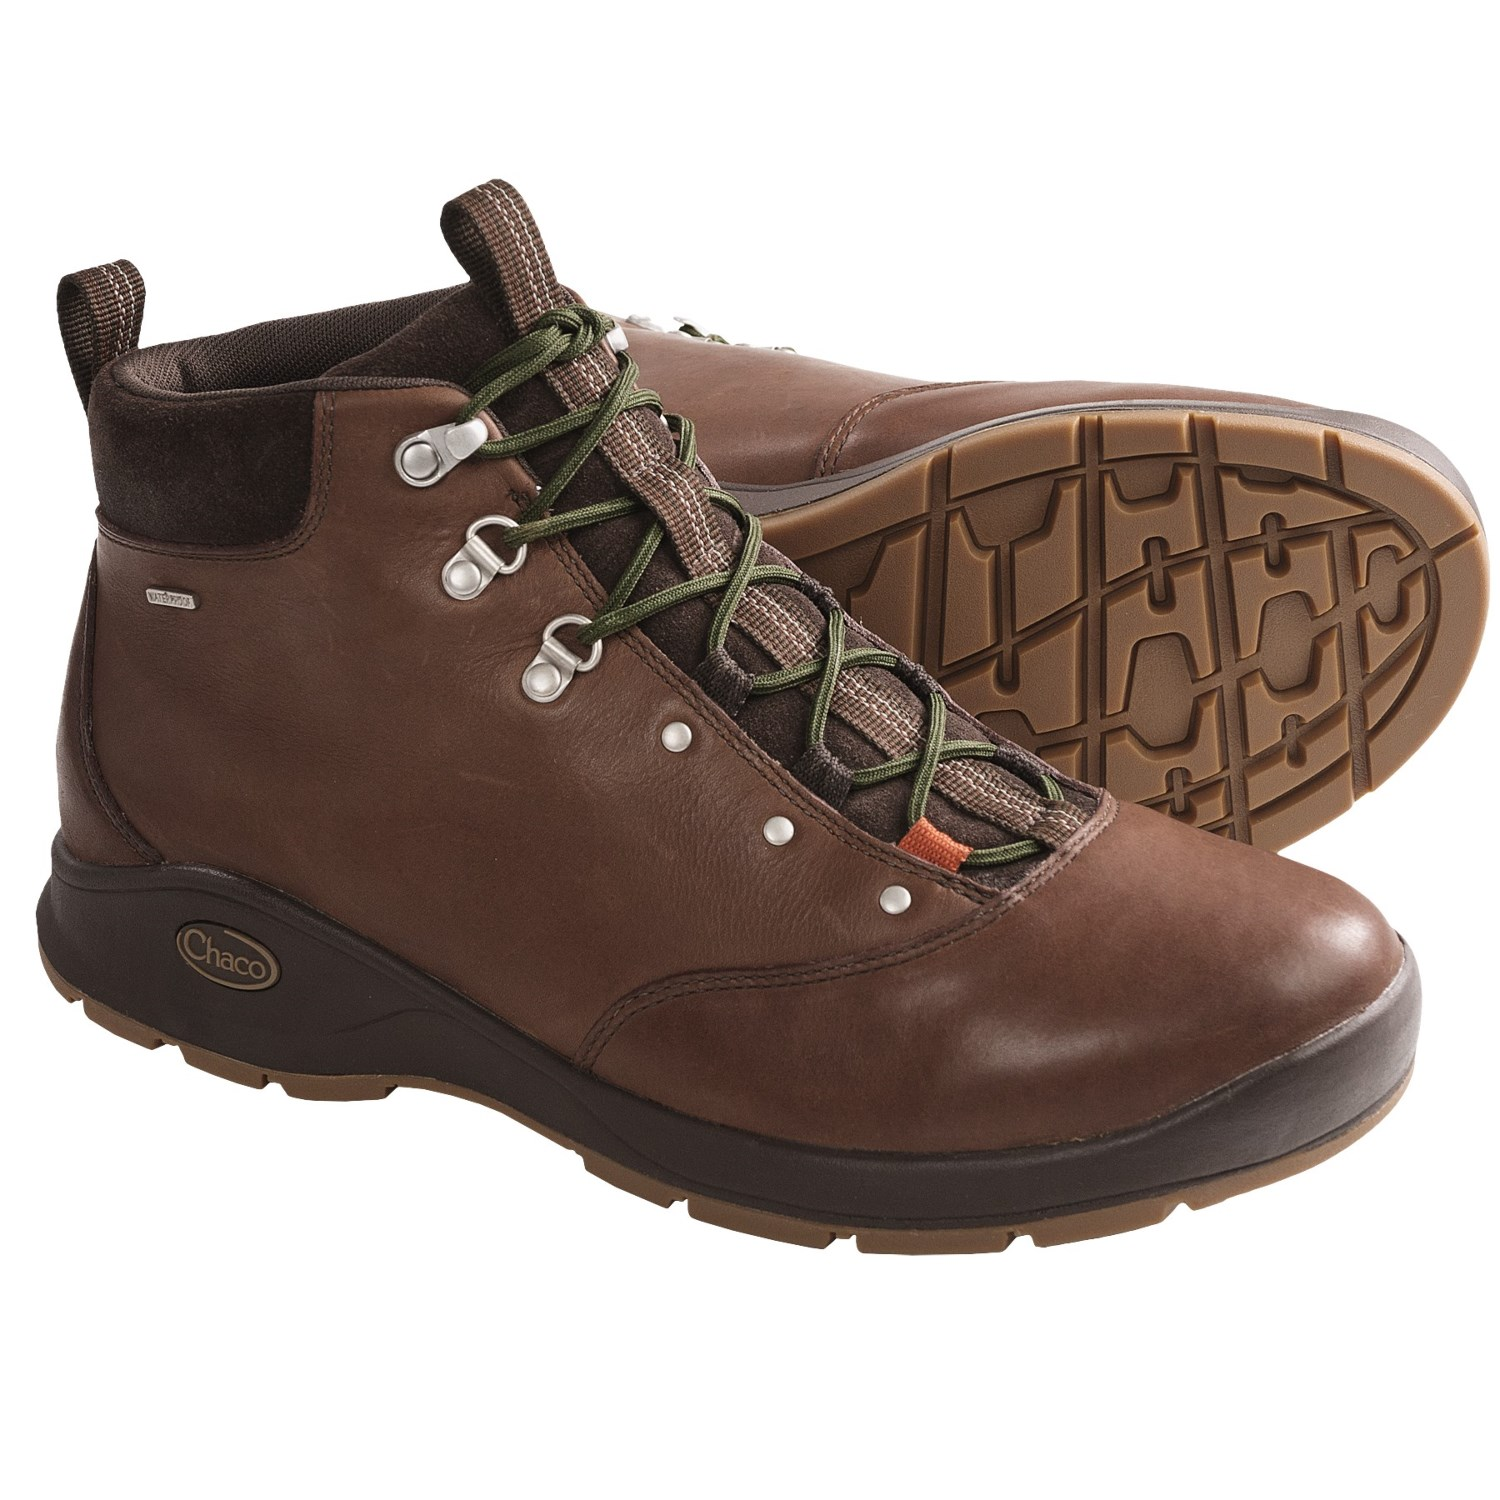 chaco tedinho boots waterproof leather for save 33